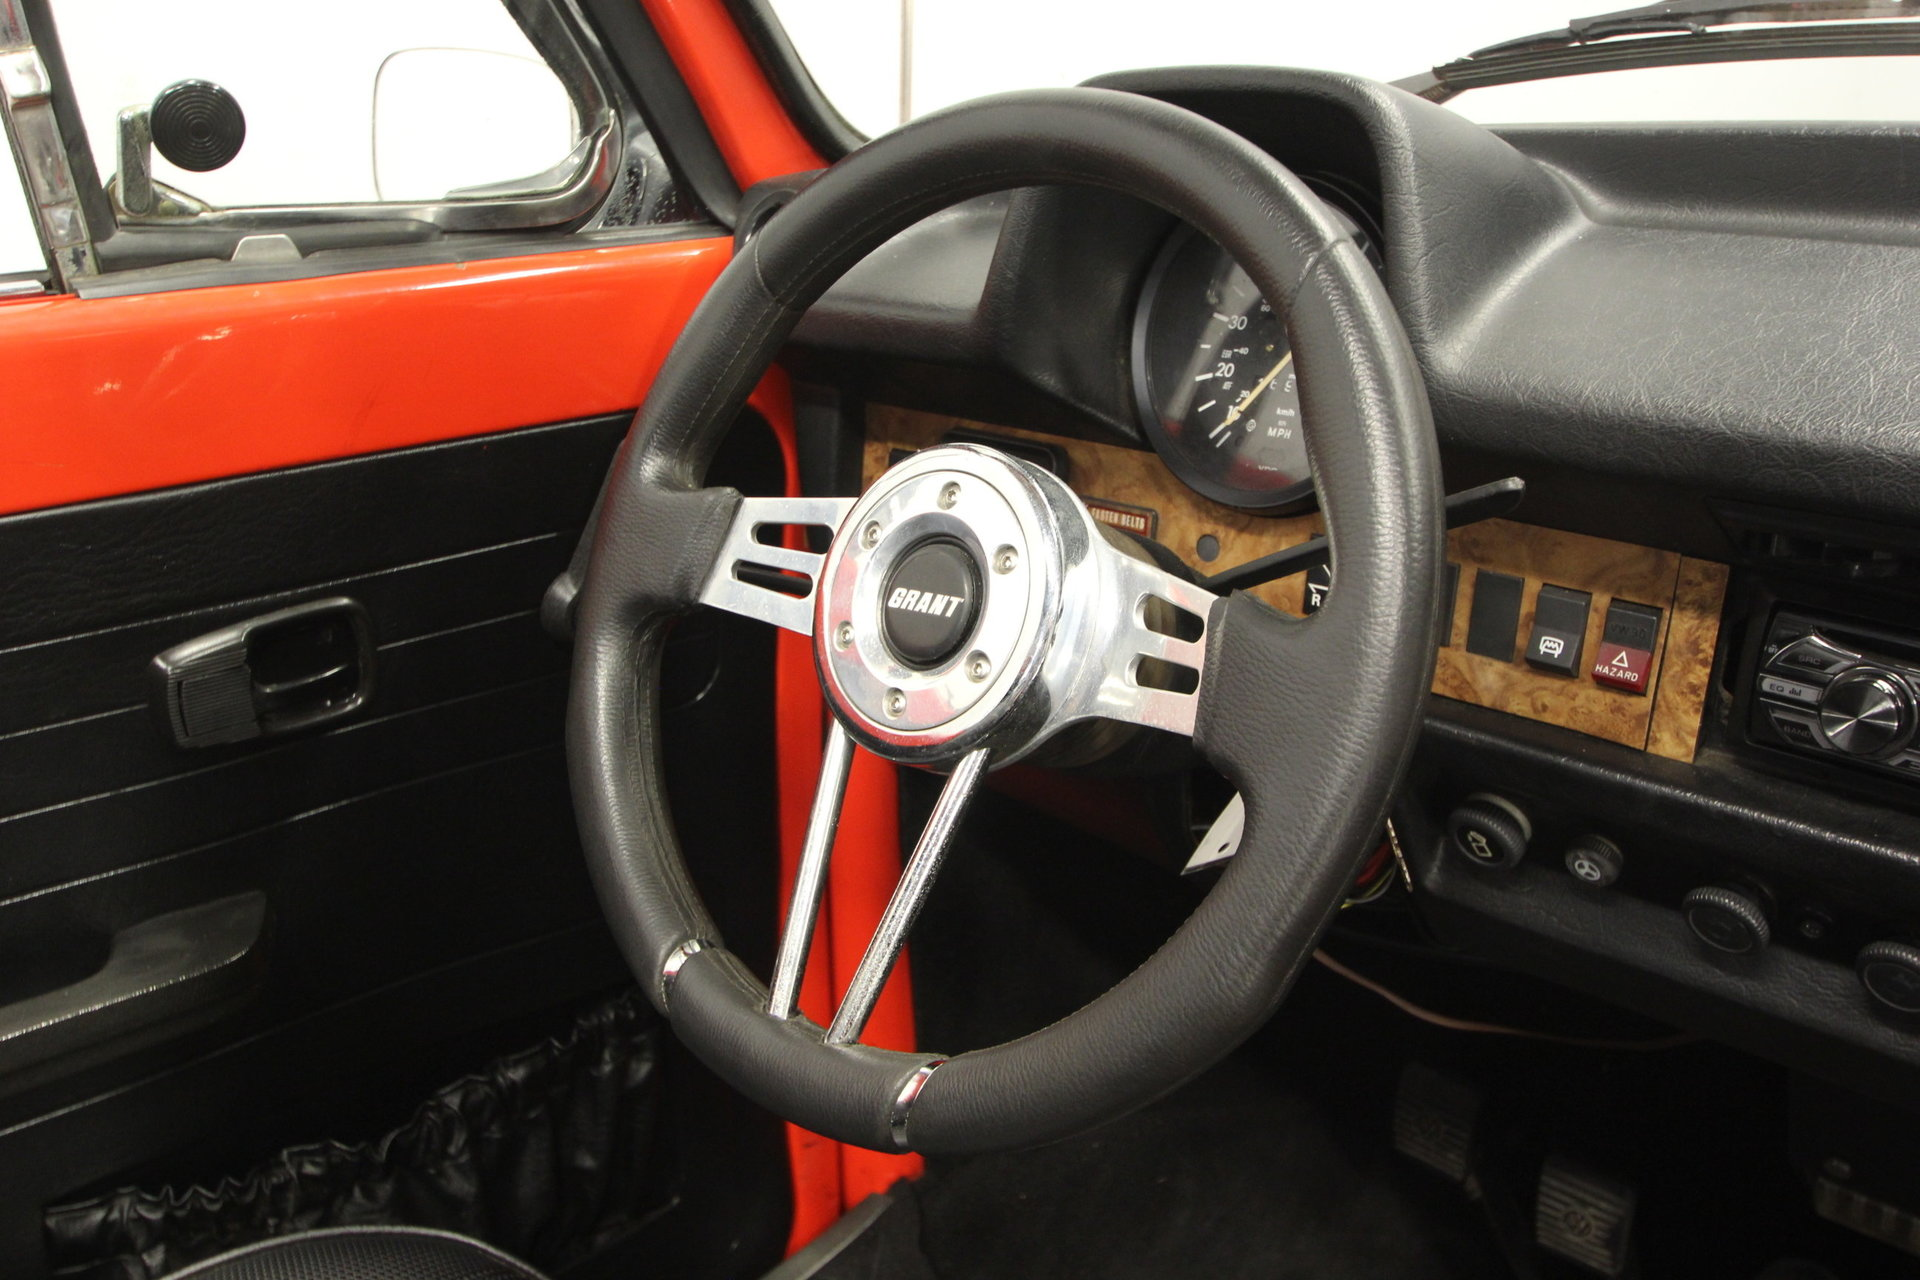 1979 Volkswagen Super Beetle Streetside Classics The Nations Vdo Gauge Wiring In A View 360